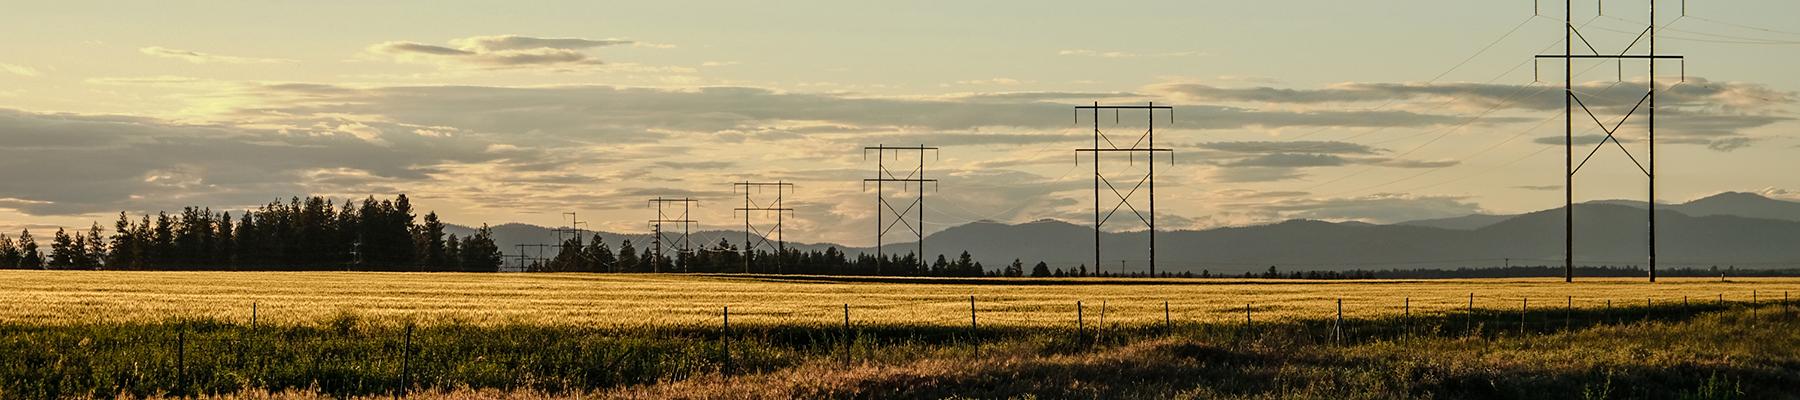 Colville cornfields with telephone poles/lines at sunset